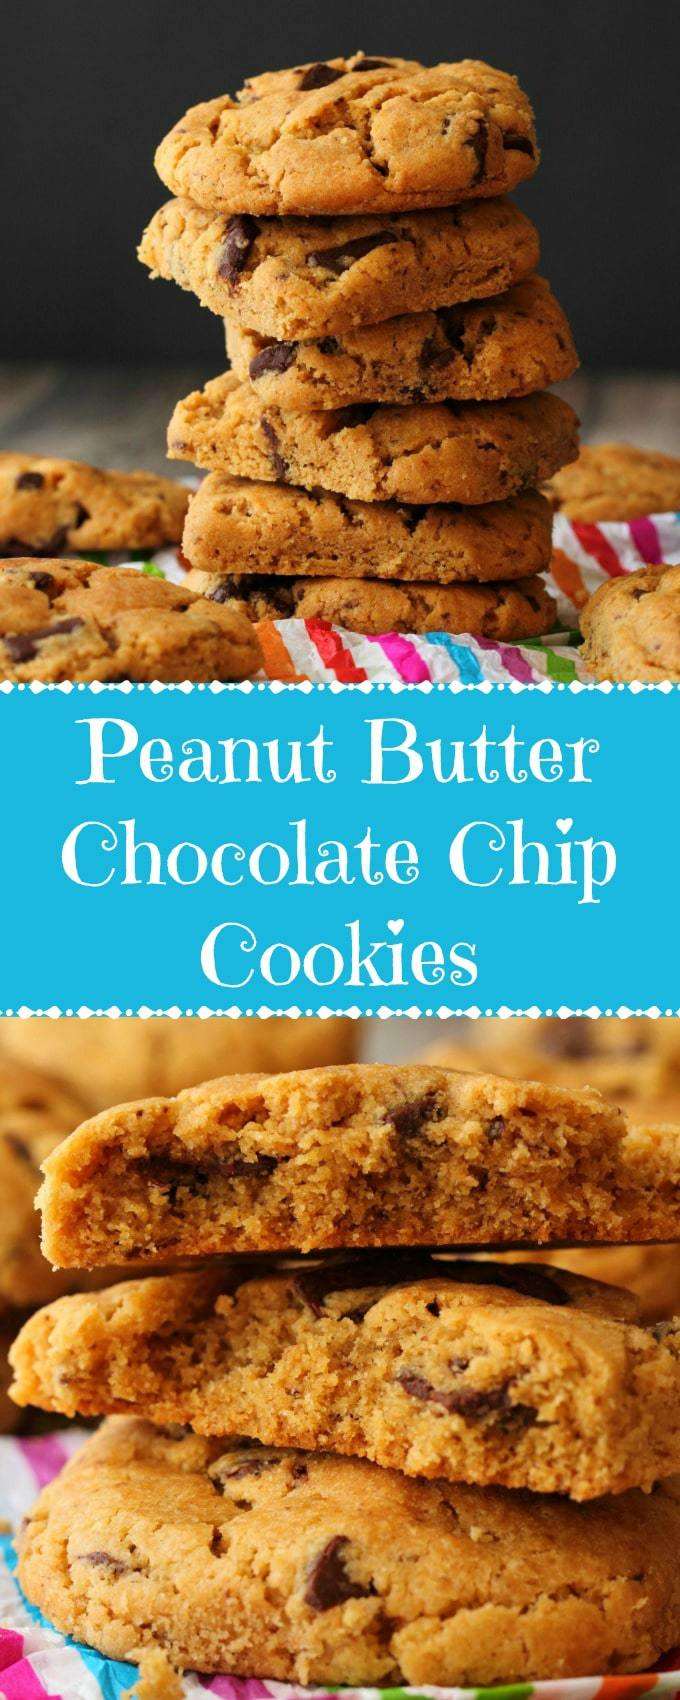 Thick and delicious vegan peanut butter chocolate chip cookies! These rich and decadent vegan cookies are crispy on the edges, soft in the centers and loaded with peanut butter flavor and chocolate chunks. | lovingitvegan.com